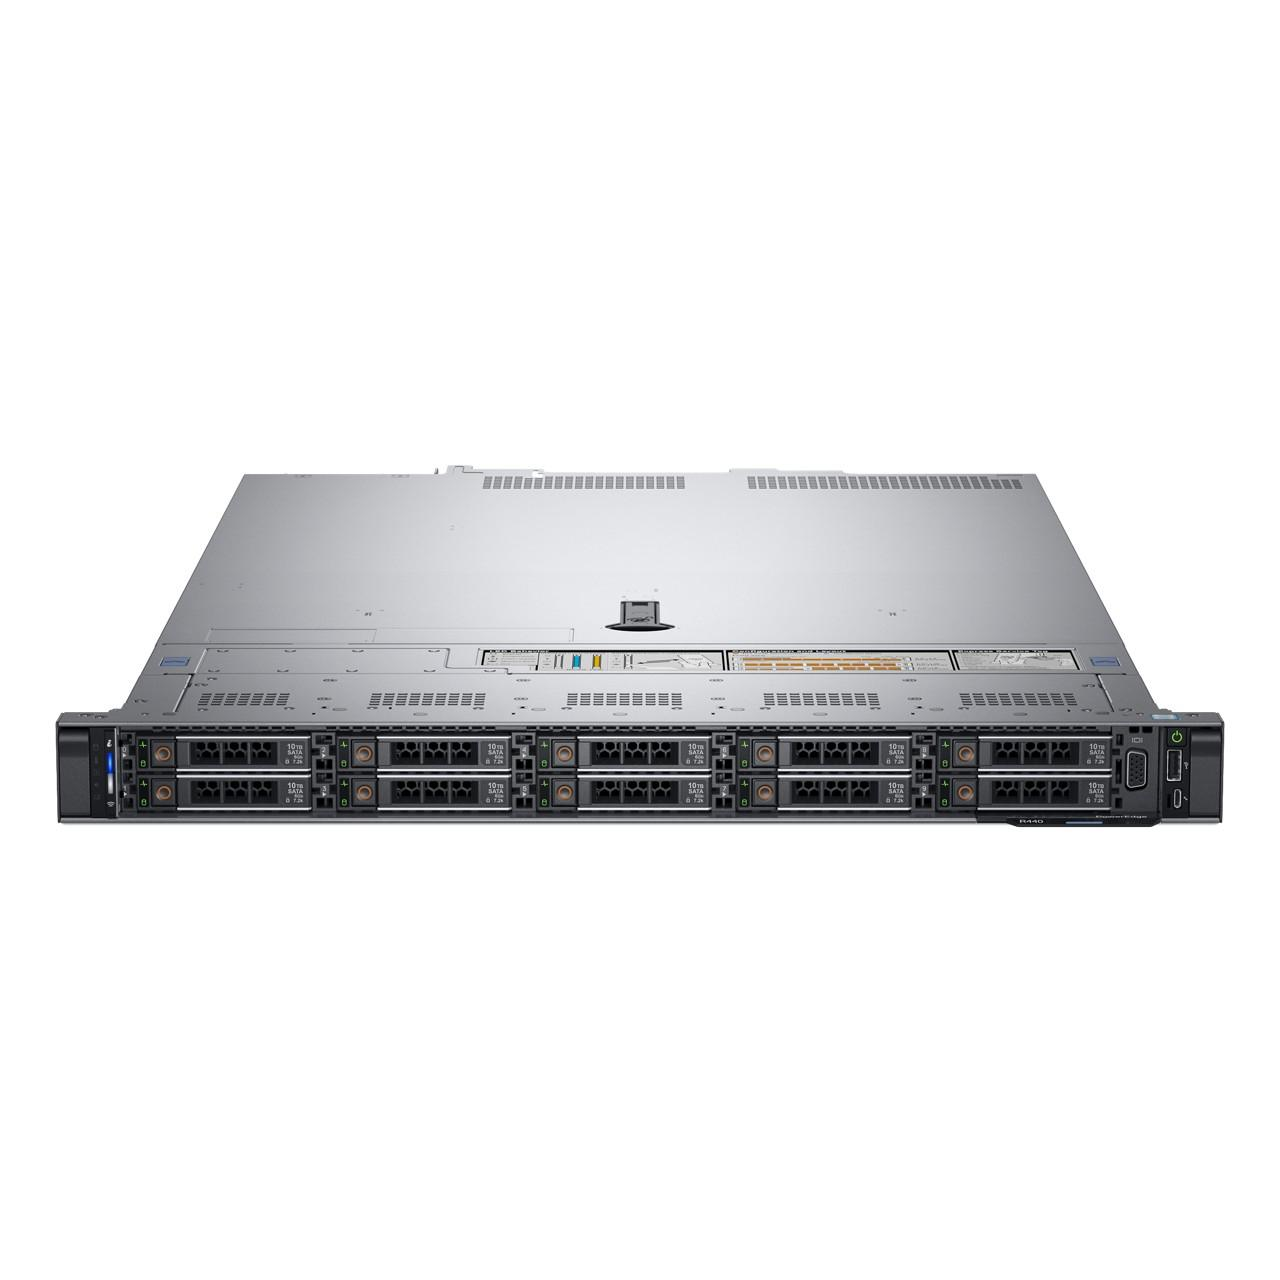 Tot 250,- korting op DELL PowerEdge servers